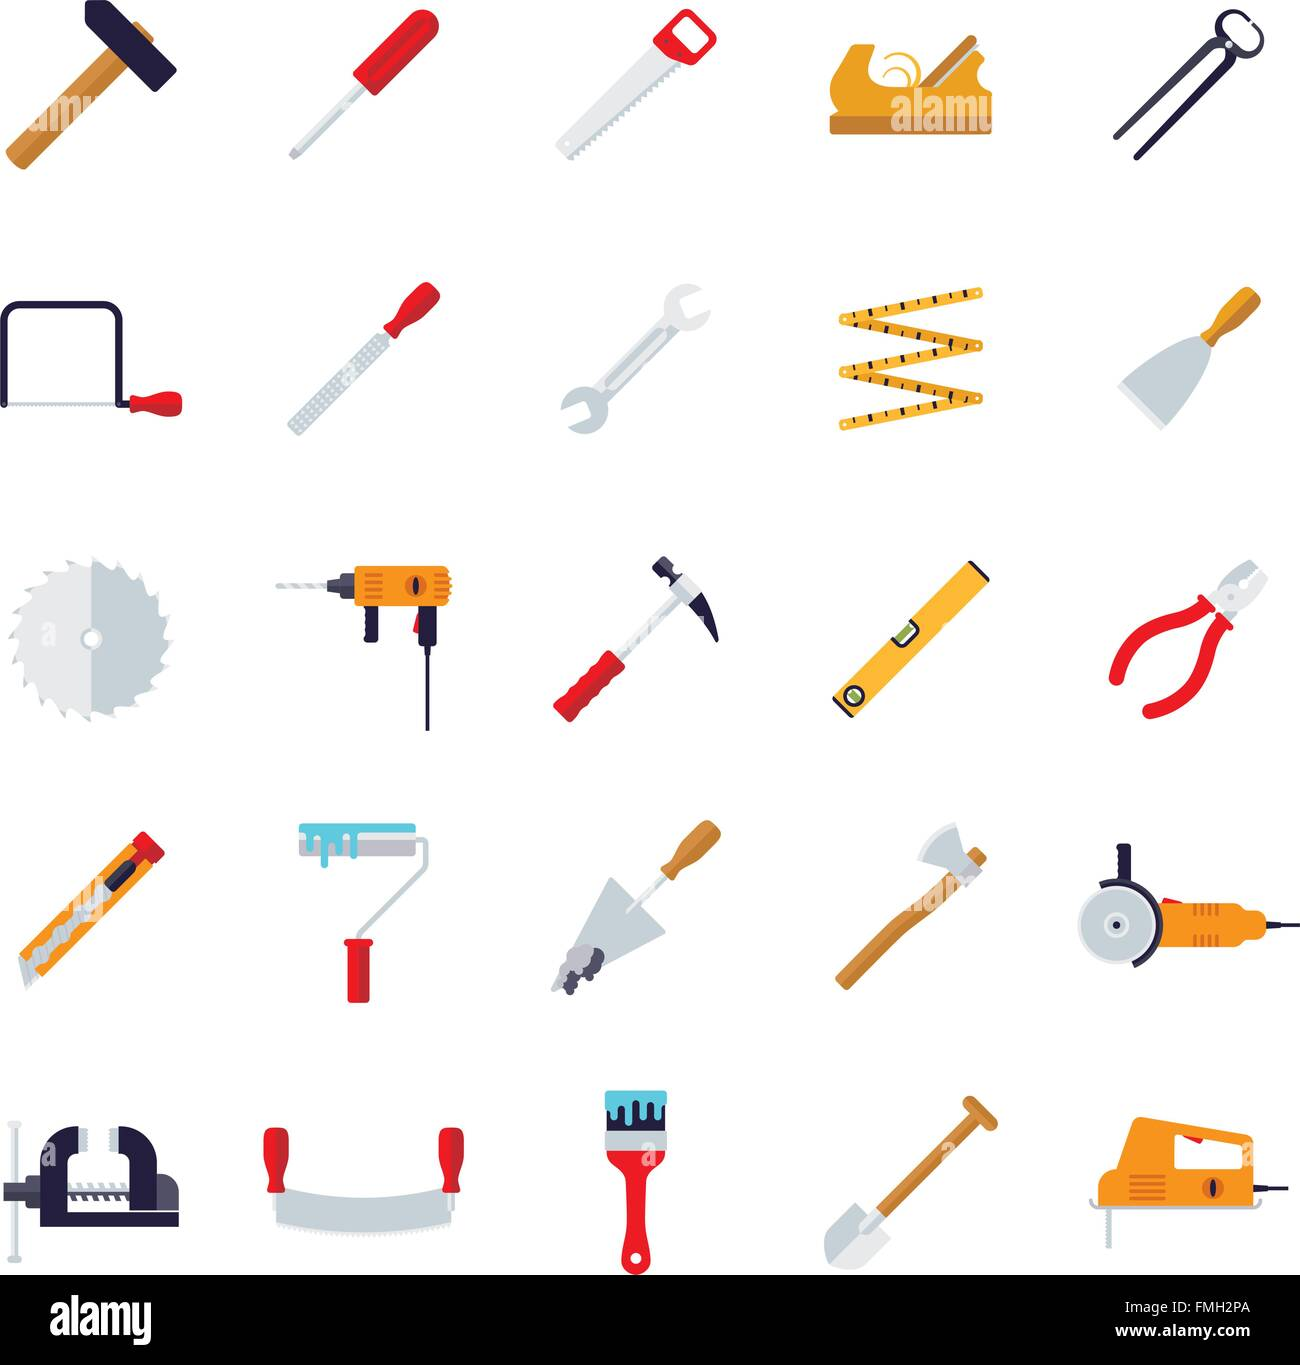 Tools and crafting flat design icons collection - Stock Vector